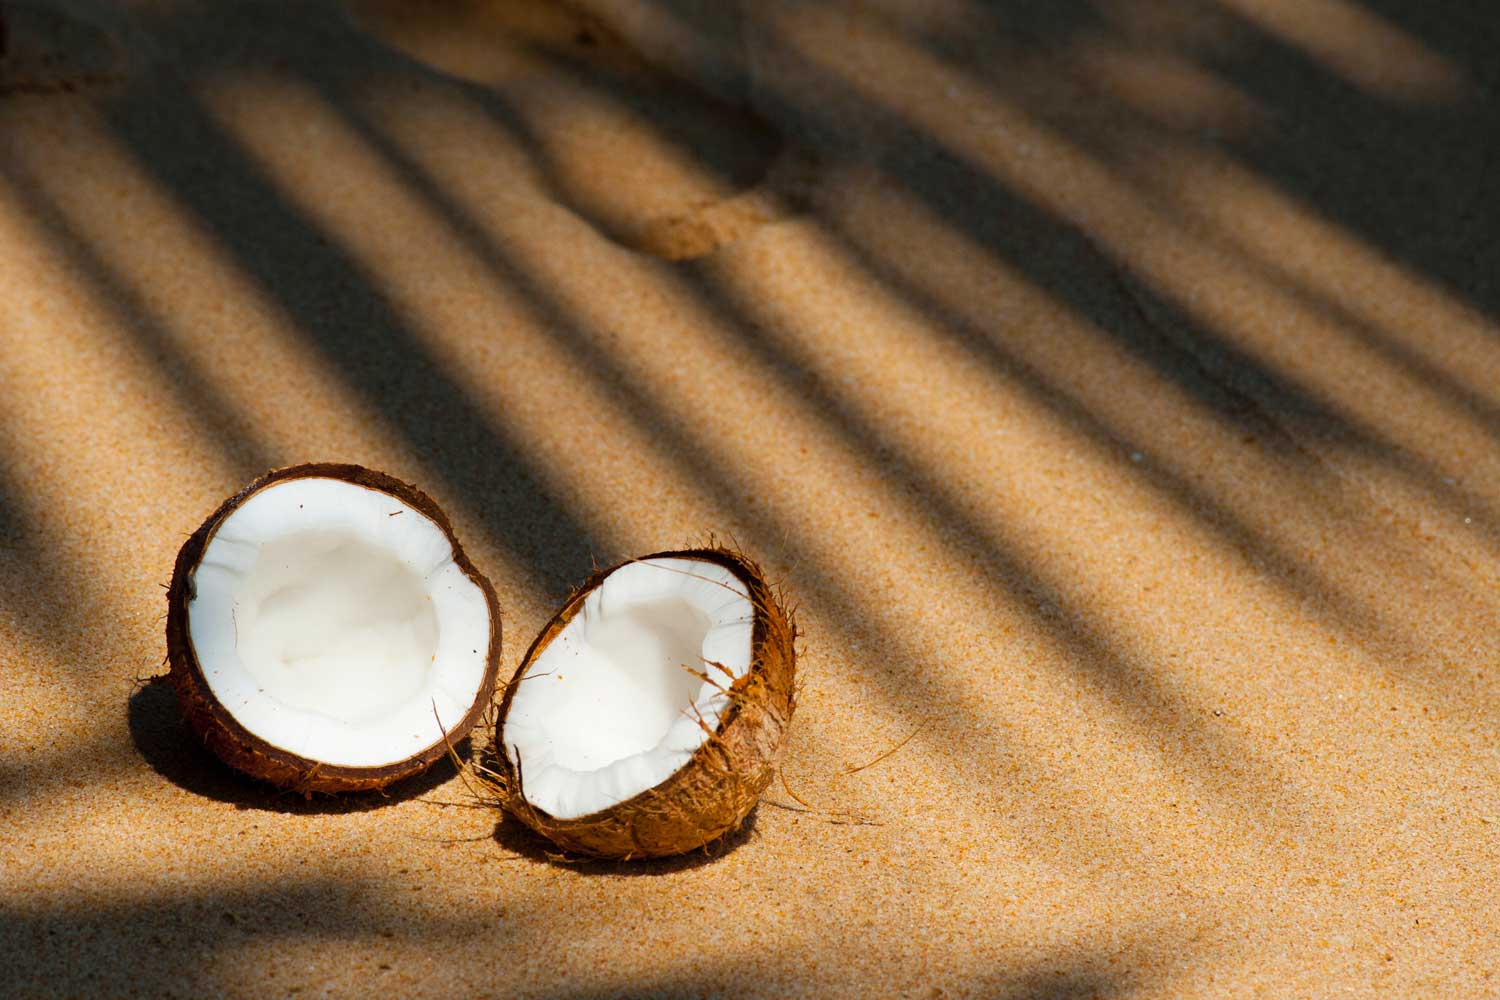 Two halves of a coconut placed on sand